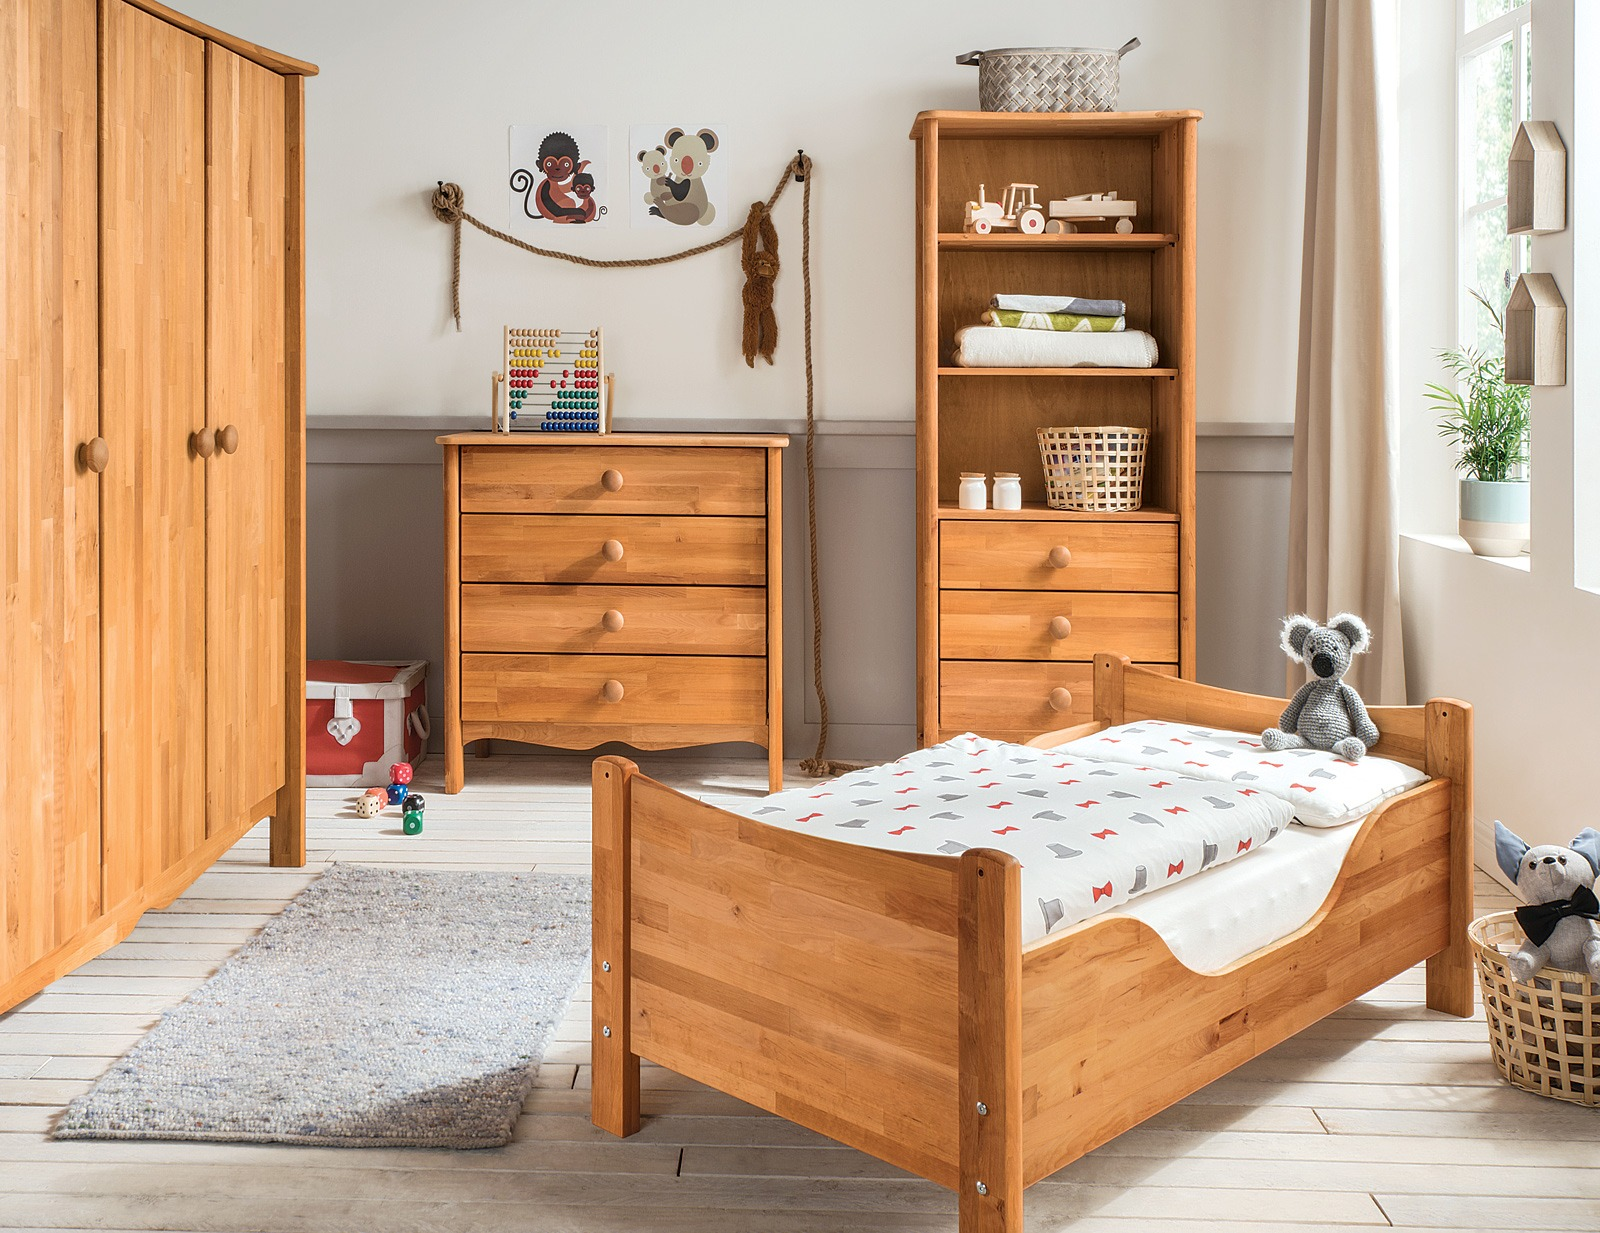 kommode lino perfekt f r das kinderzimmer. Black Bedroom Furniture Sets. Home Design Ideas